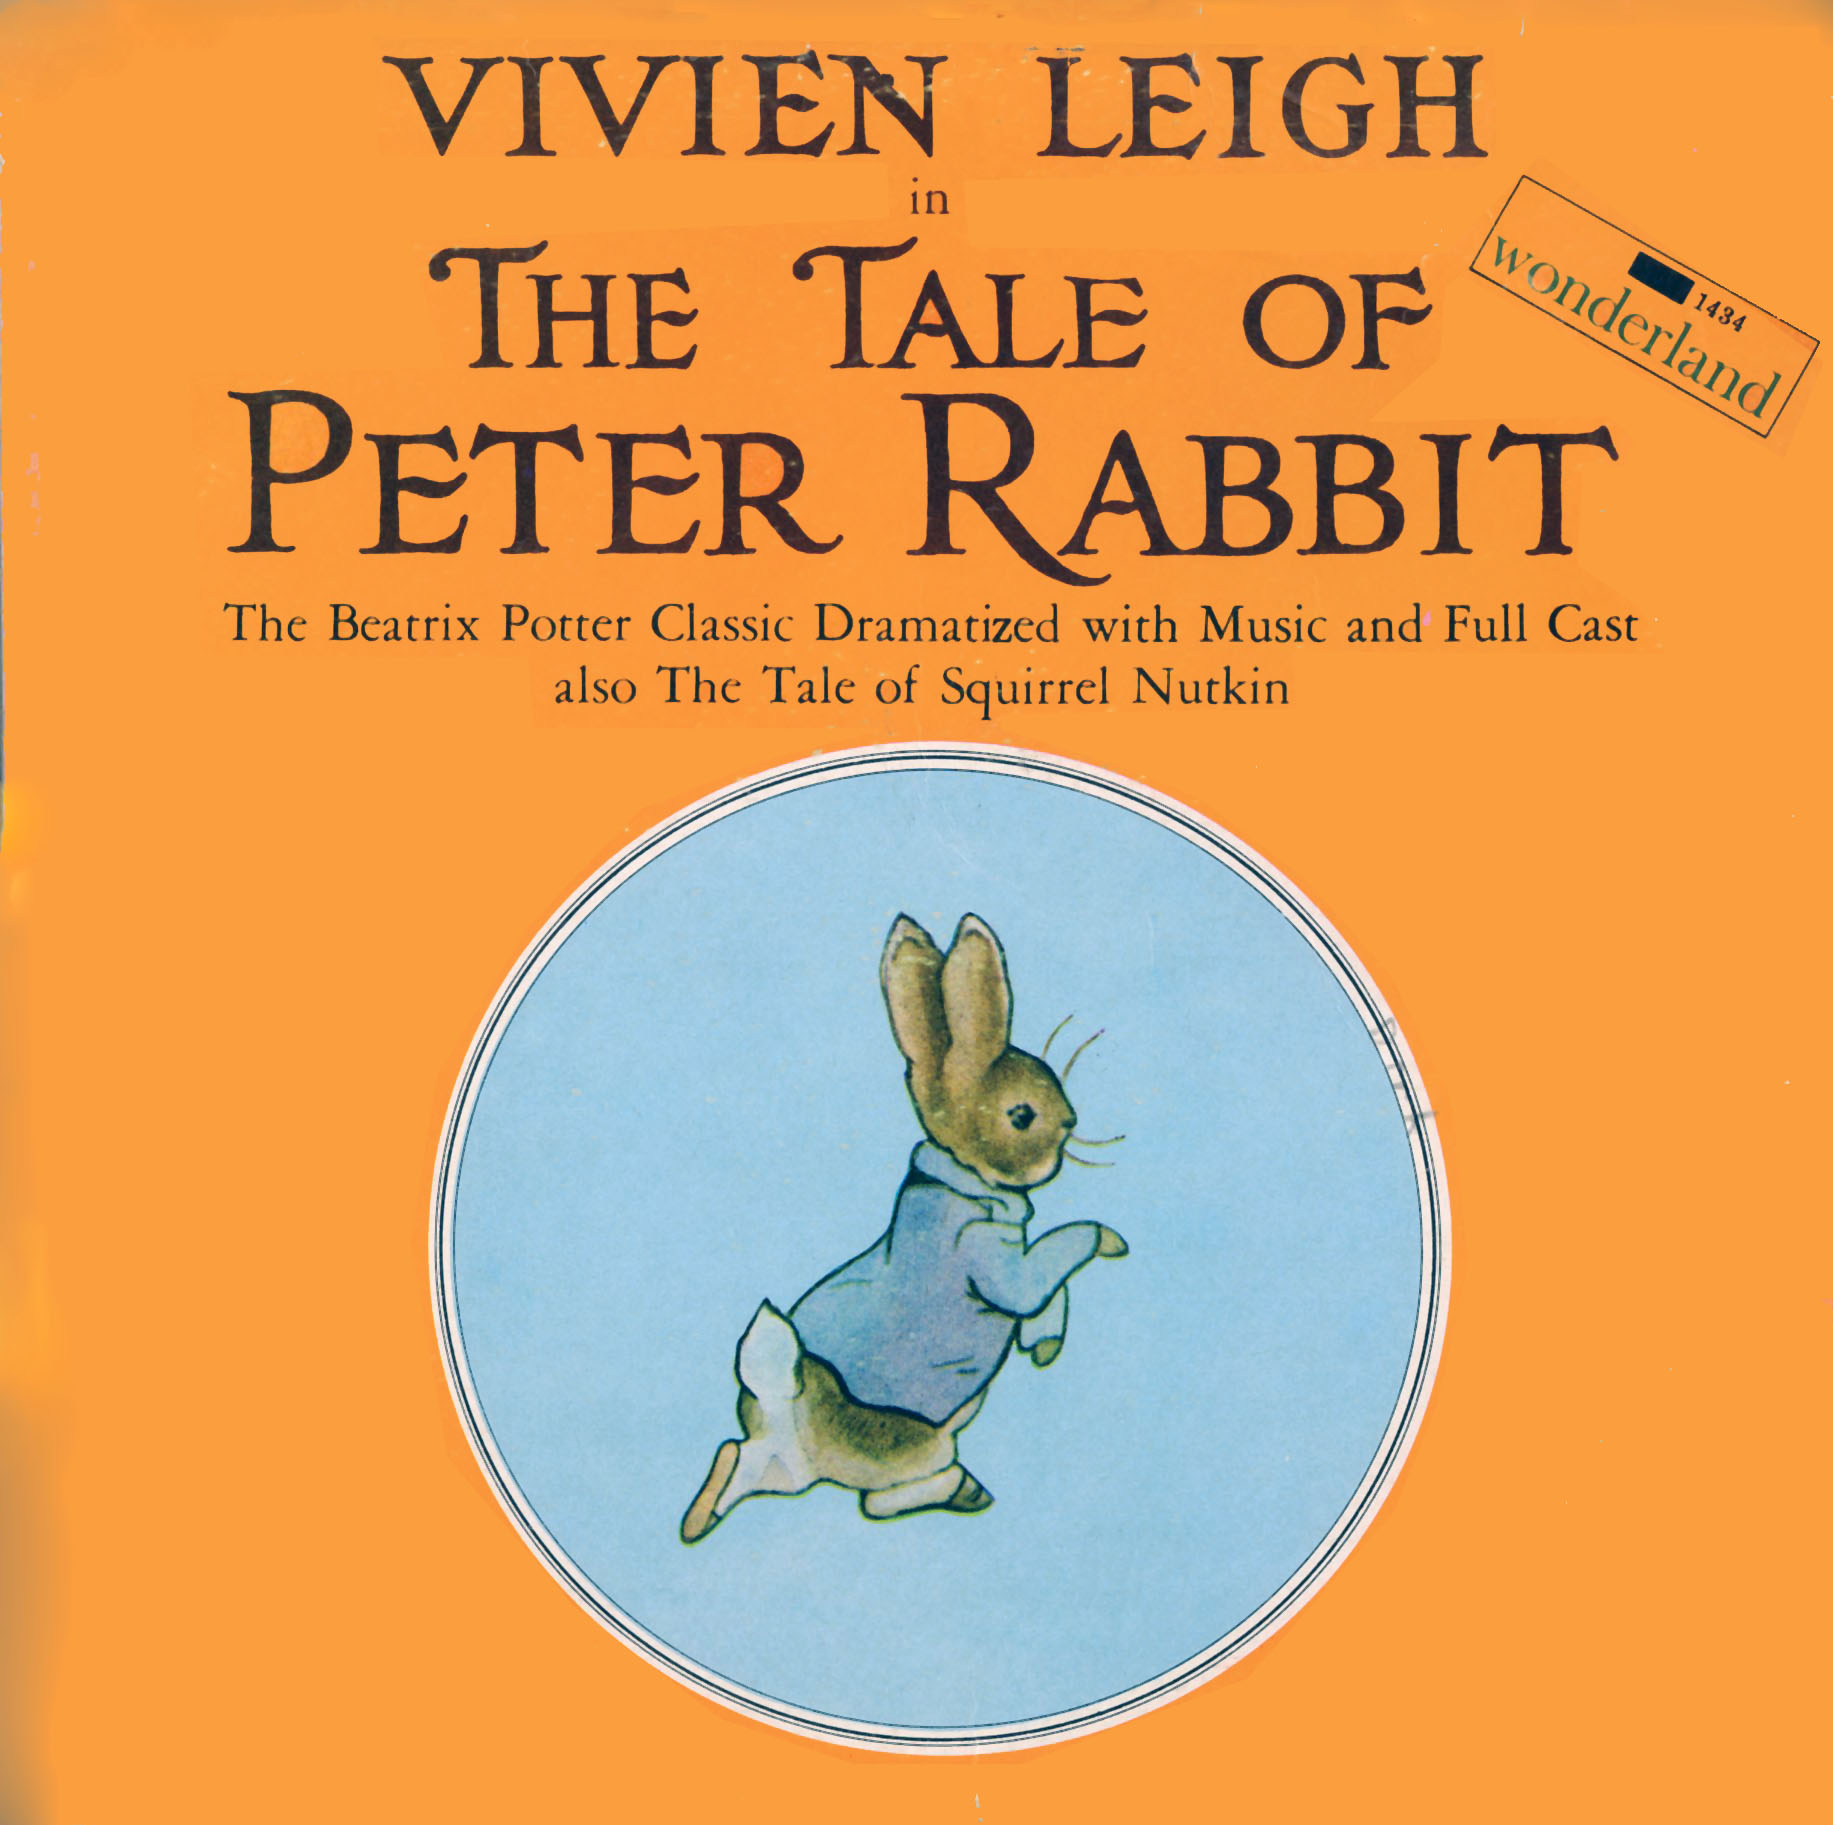 1434 - Tale of Peter Rabbit on CD